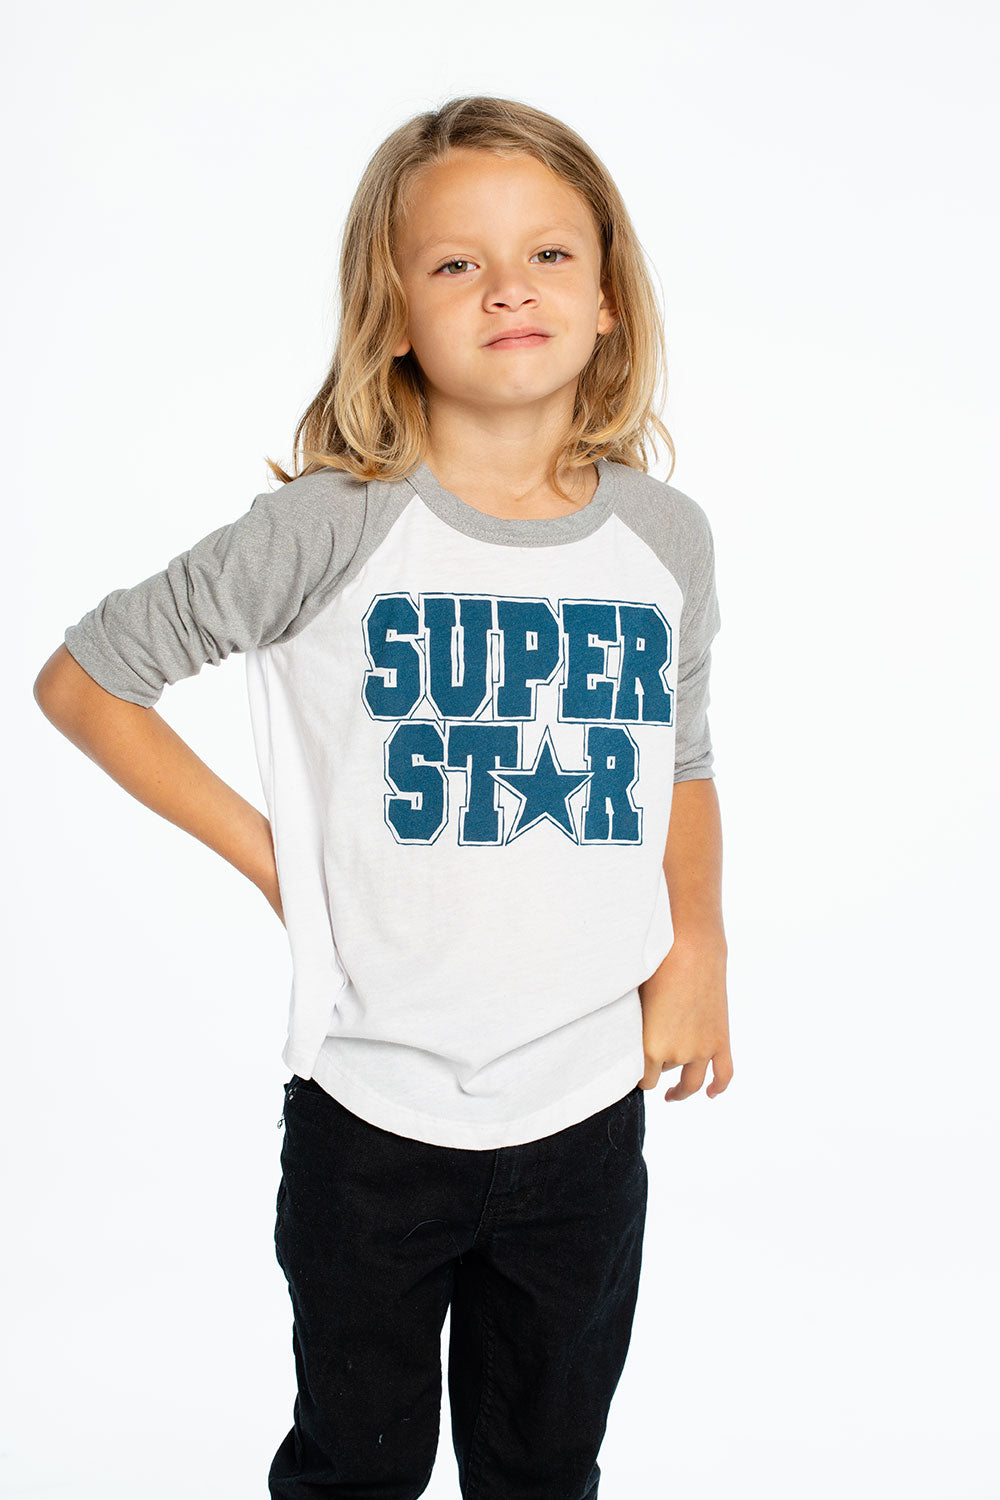 Super Star BOYS - chaserbrand